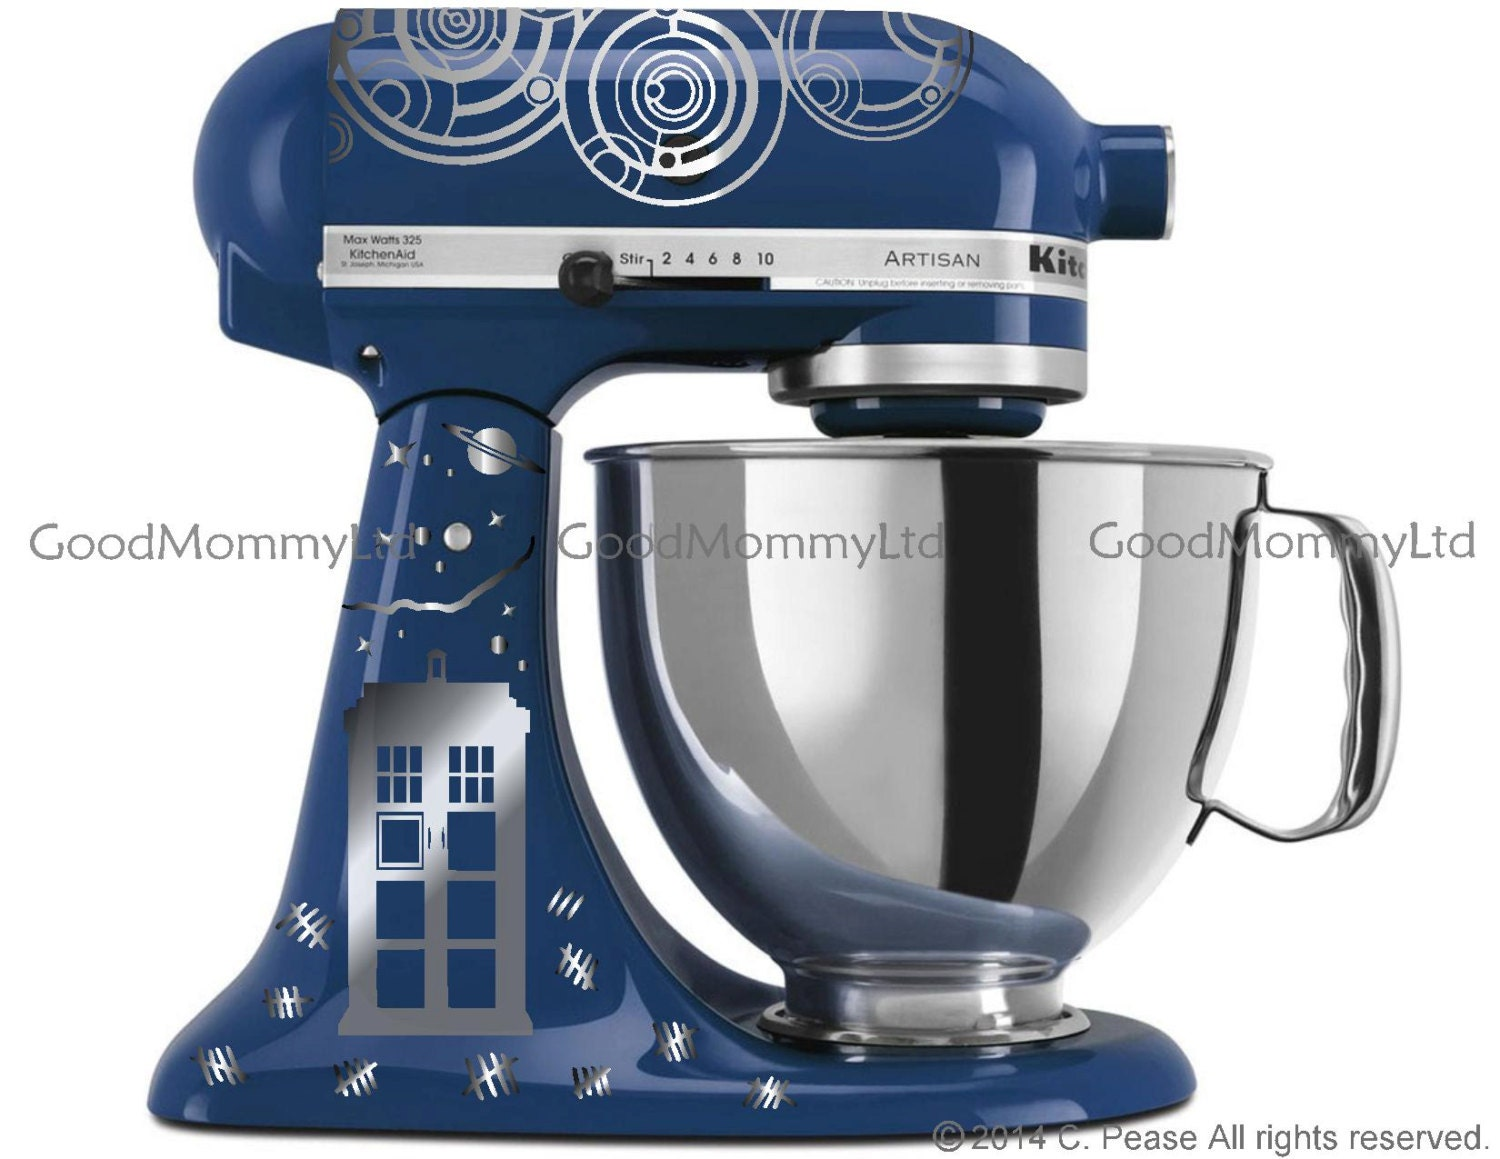 Dr Who Inspired Time Lord Souffle Girl Kitchenaid Stand Mixer Decal Kit For Whovian Bakers With Gallifreyan Tardis